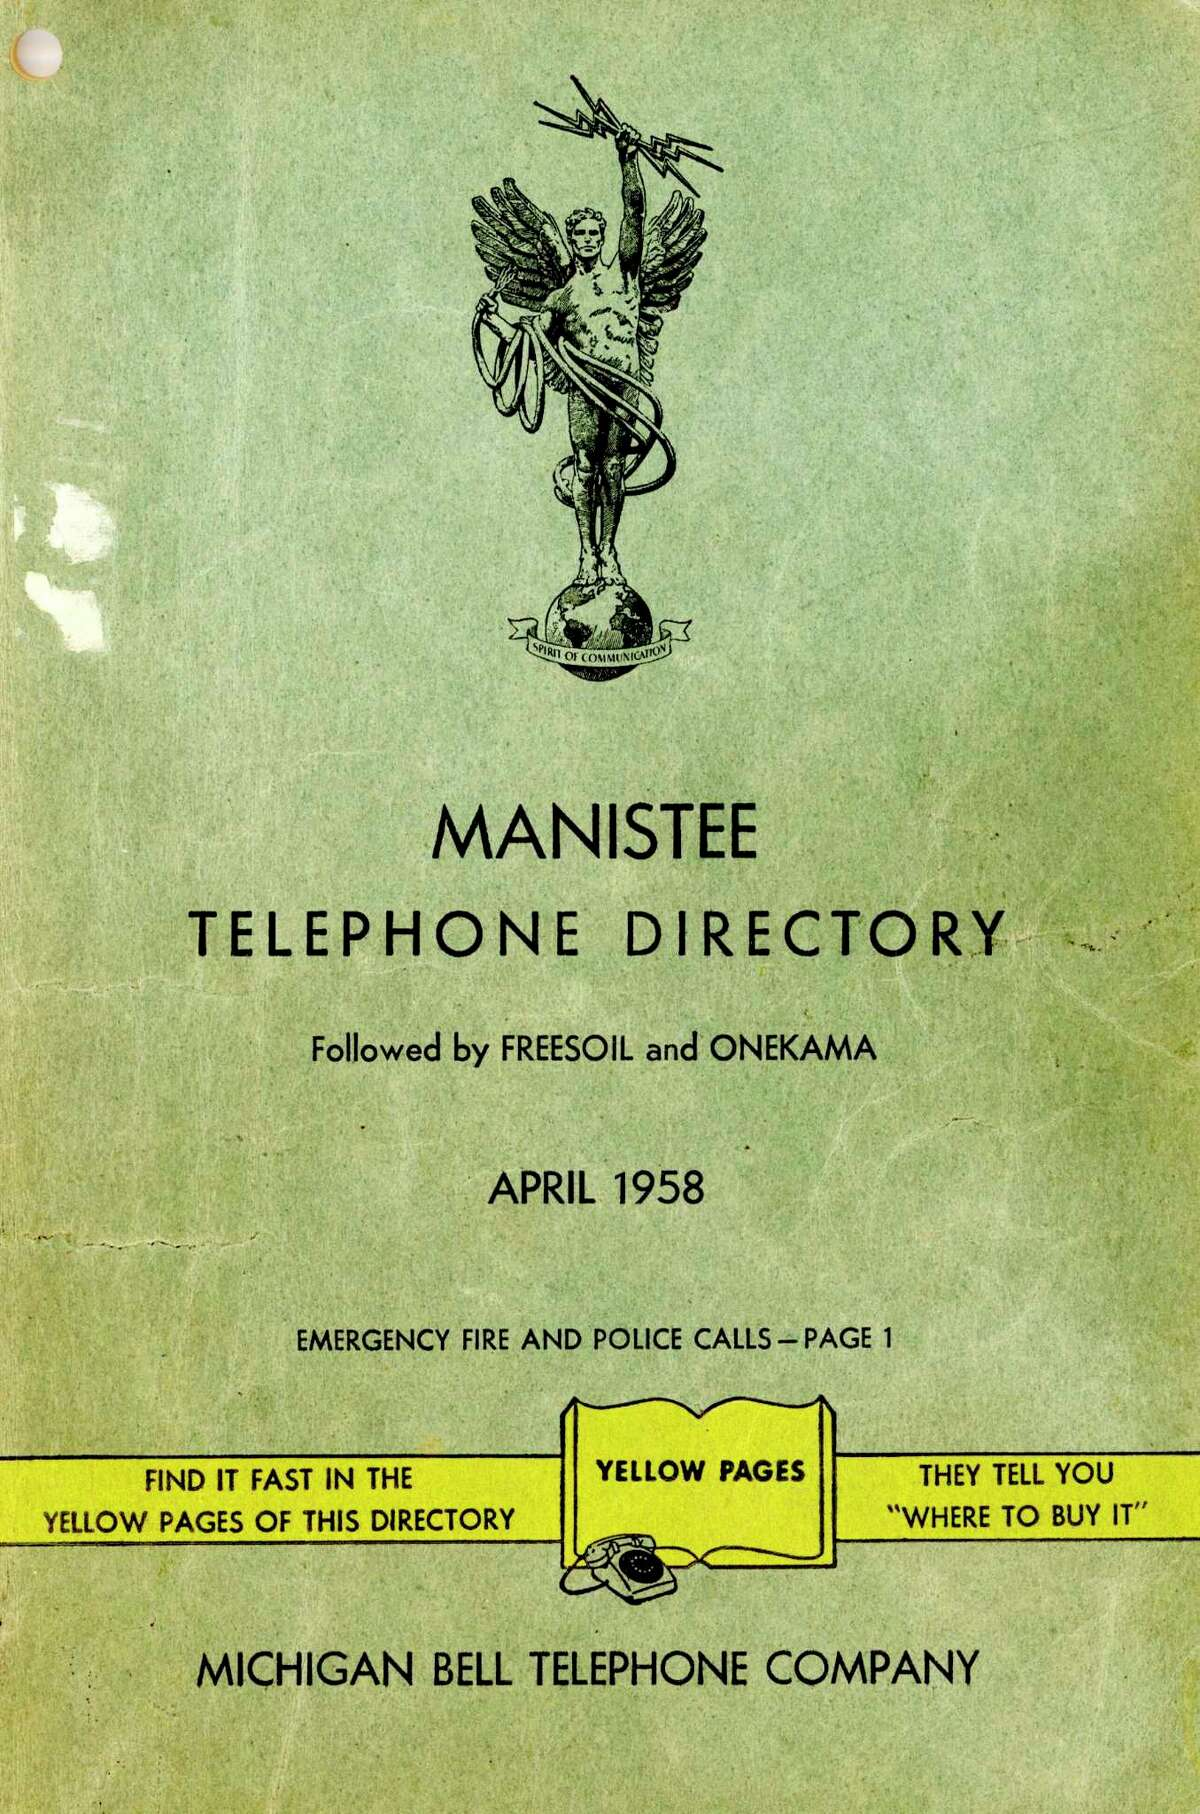 The cover of the April 1958 Manistee Telephone Directory which was the first directory under the new dial system. (Manistee County Historical Museum photo)